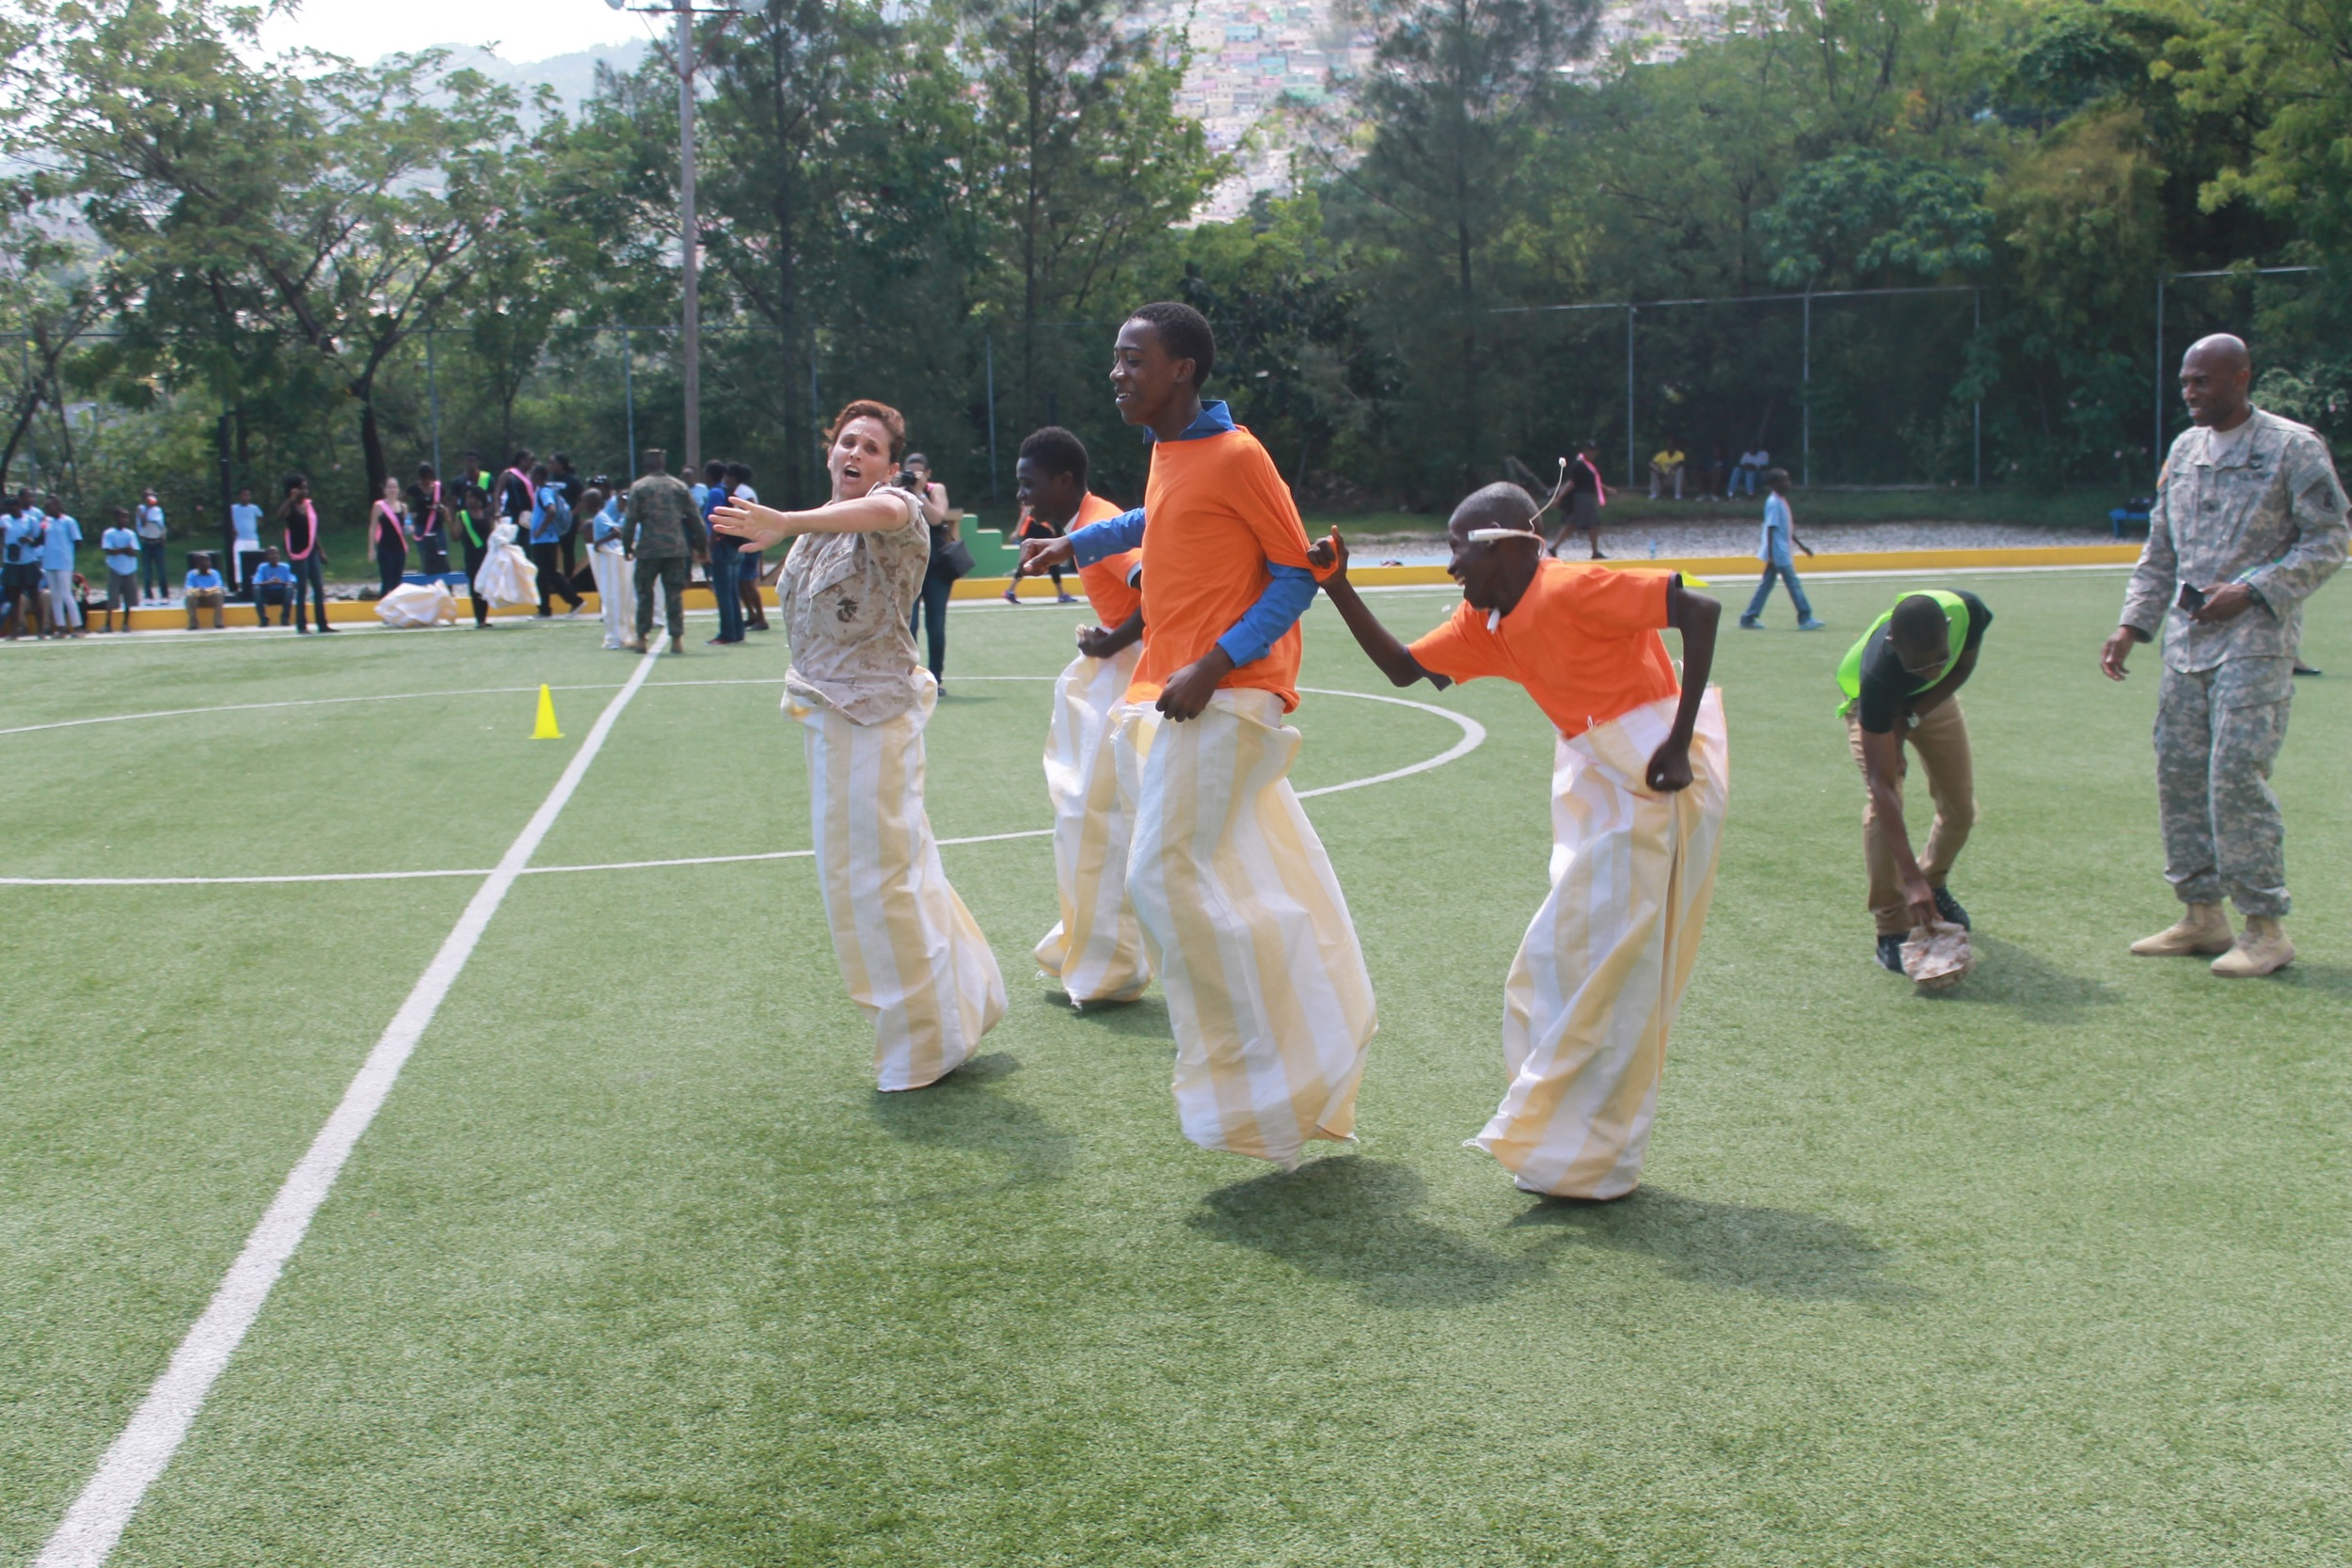 Potato sack race with member of the US Navy.     (Photo credit: Max Edward Hollant)